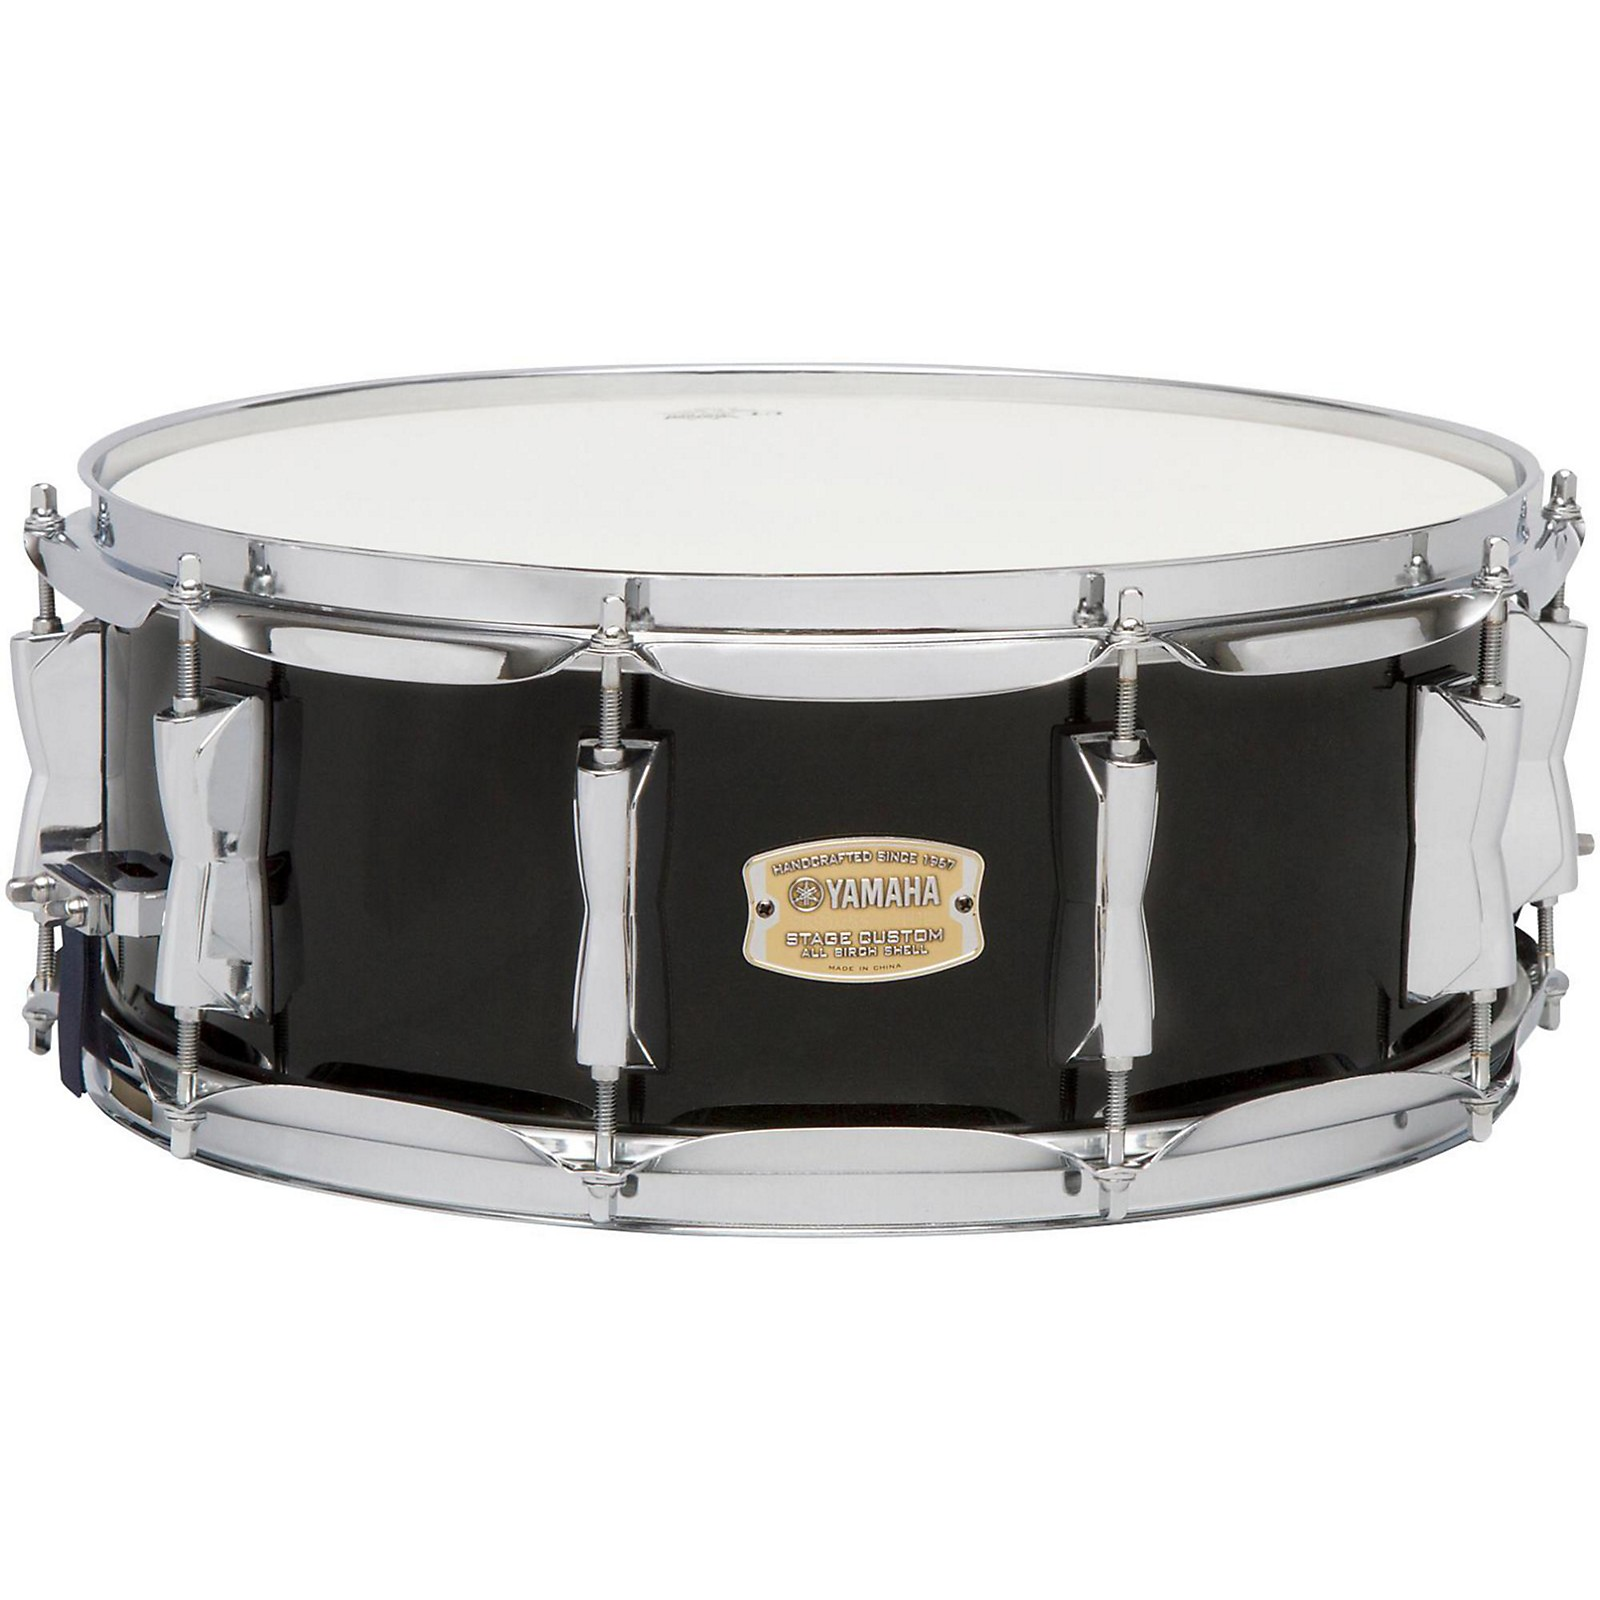 Yamaha Stage Custom Birch Snare 14x5.5